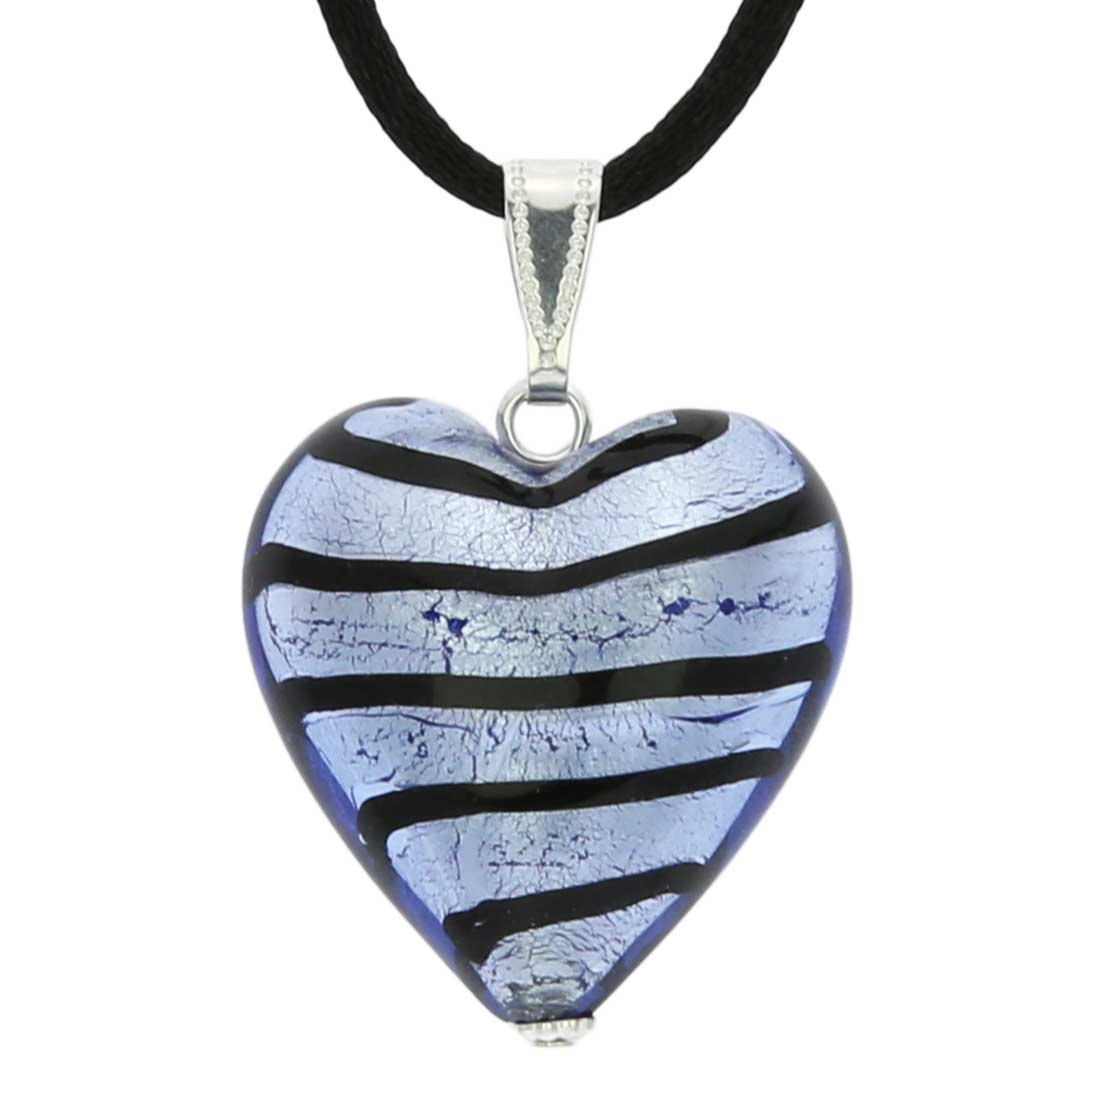 Murano Heart Pendant - Striped Silver Blue